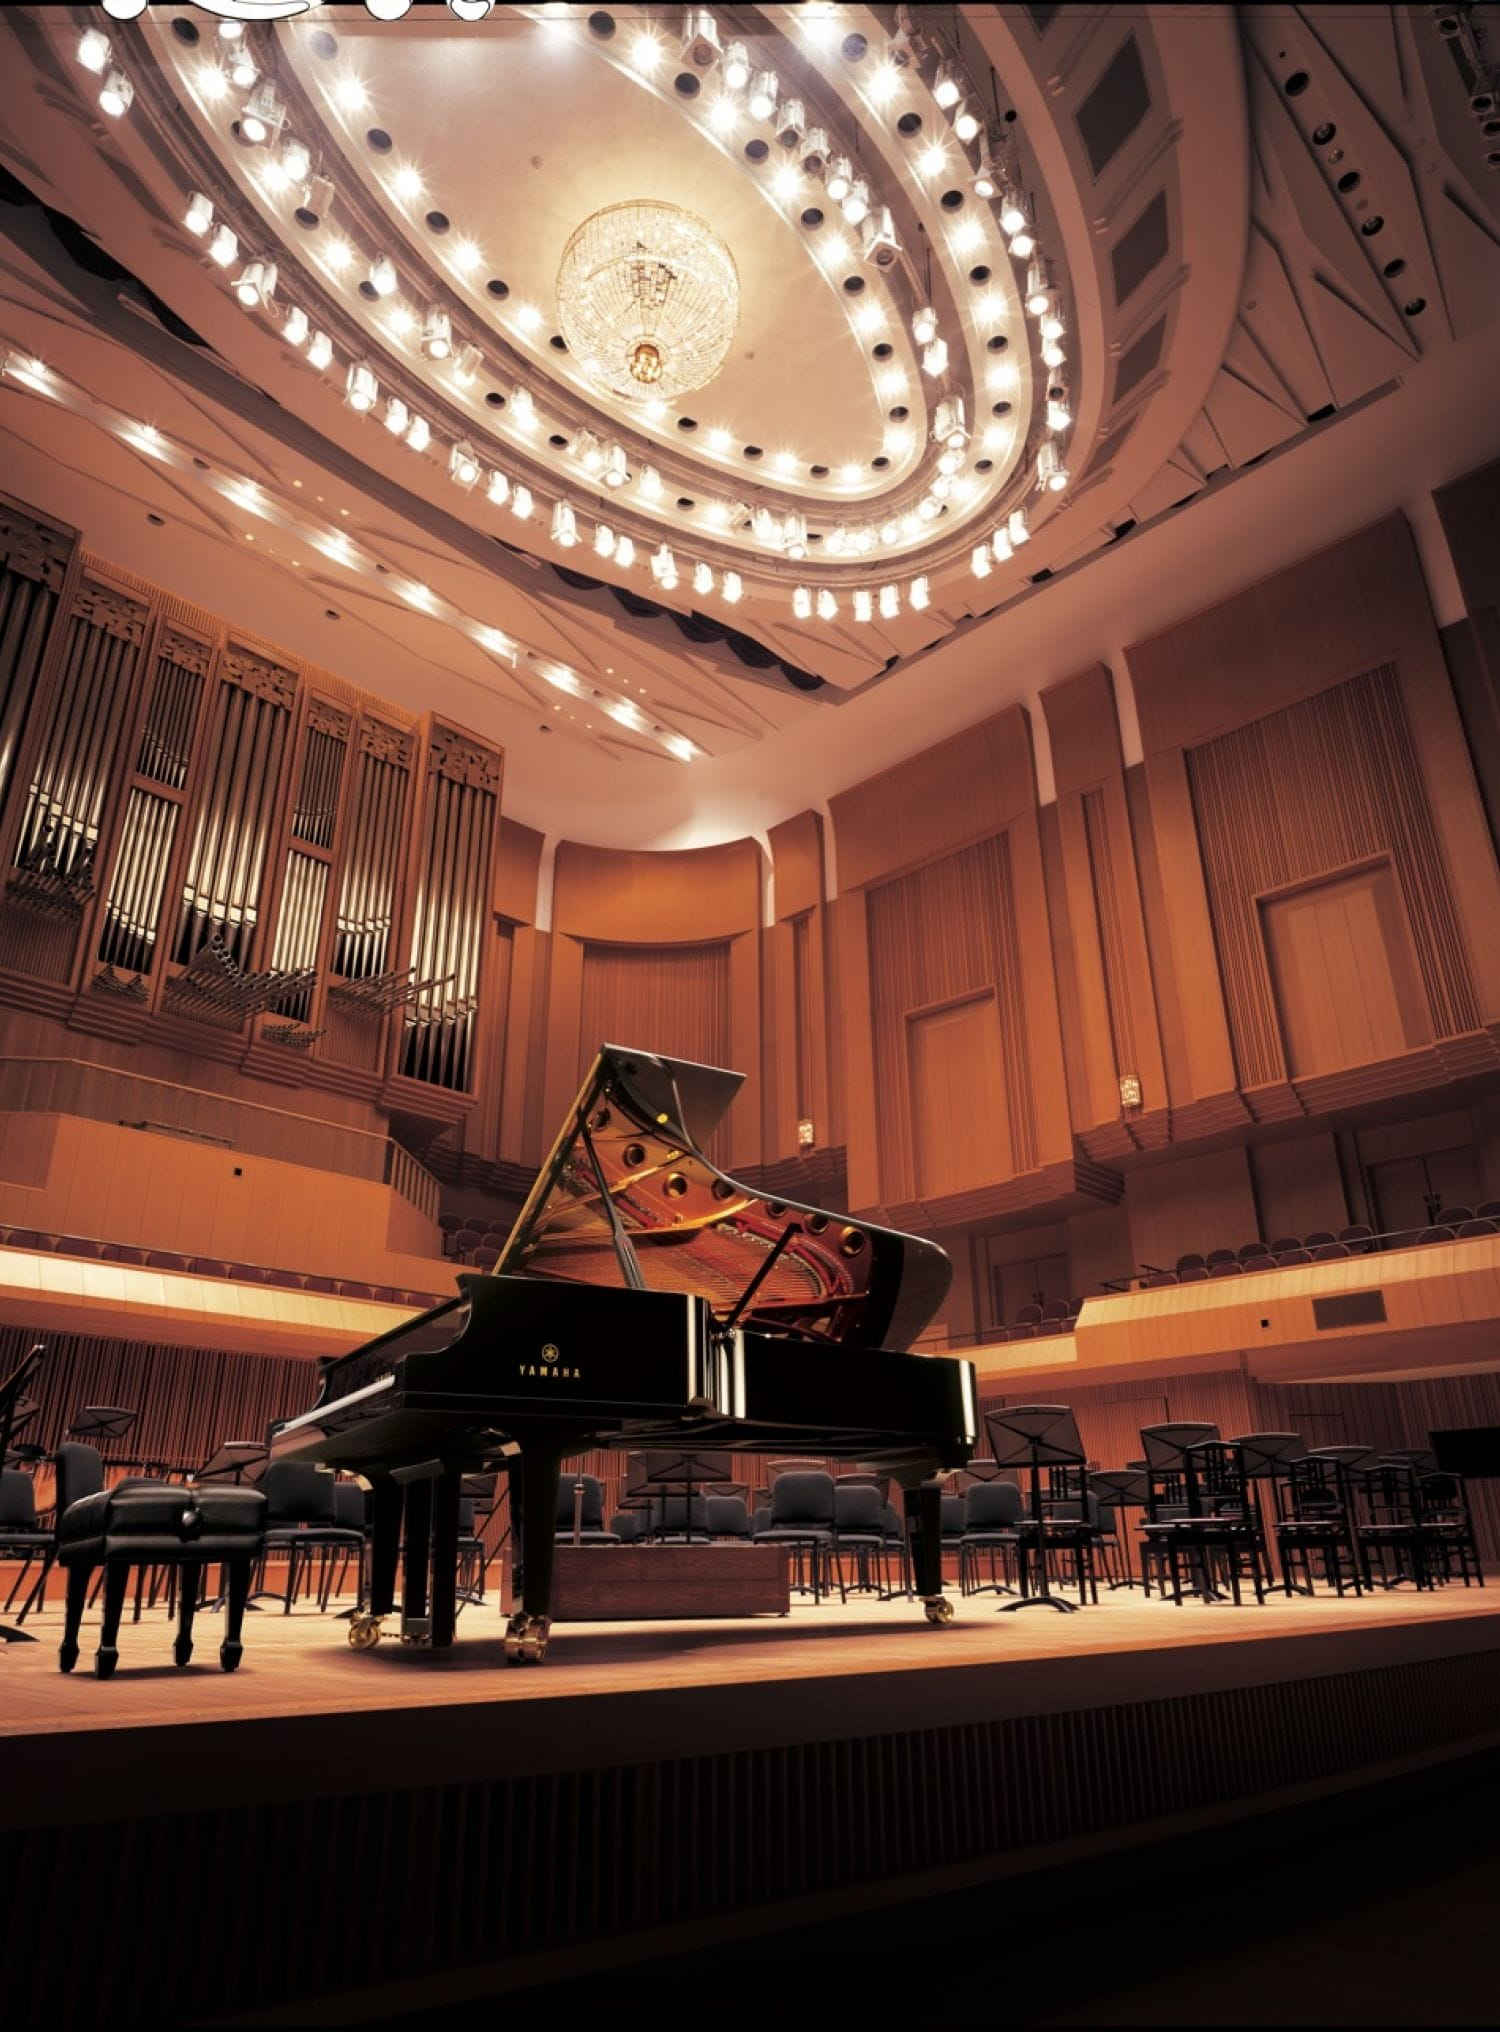 A Yamaha concert grand piano front and center on a fancy performance hall set for an orchestral performance.